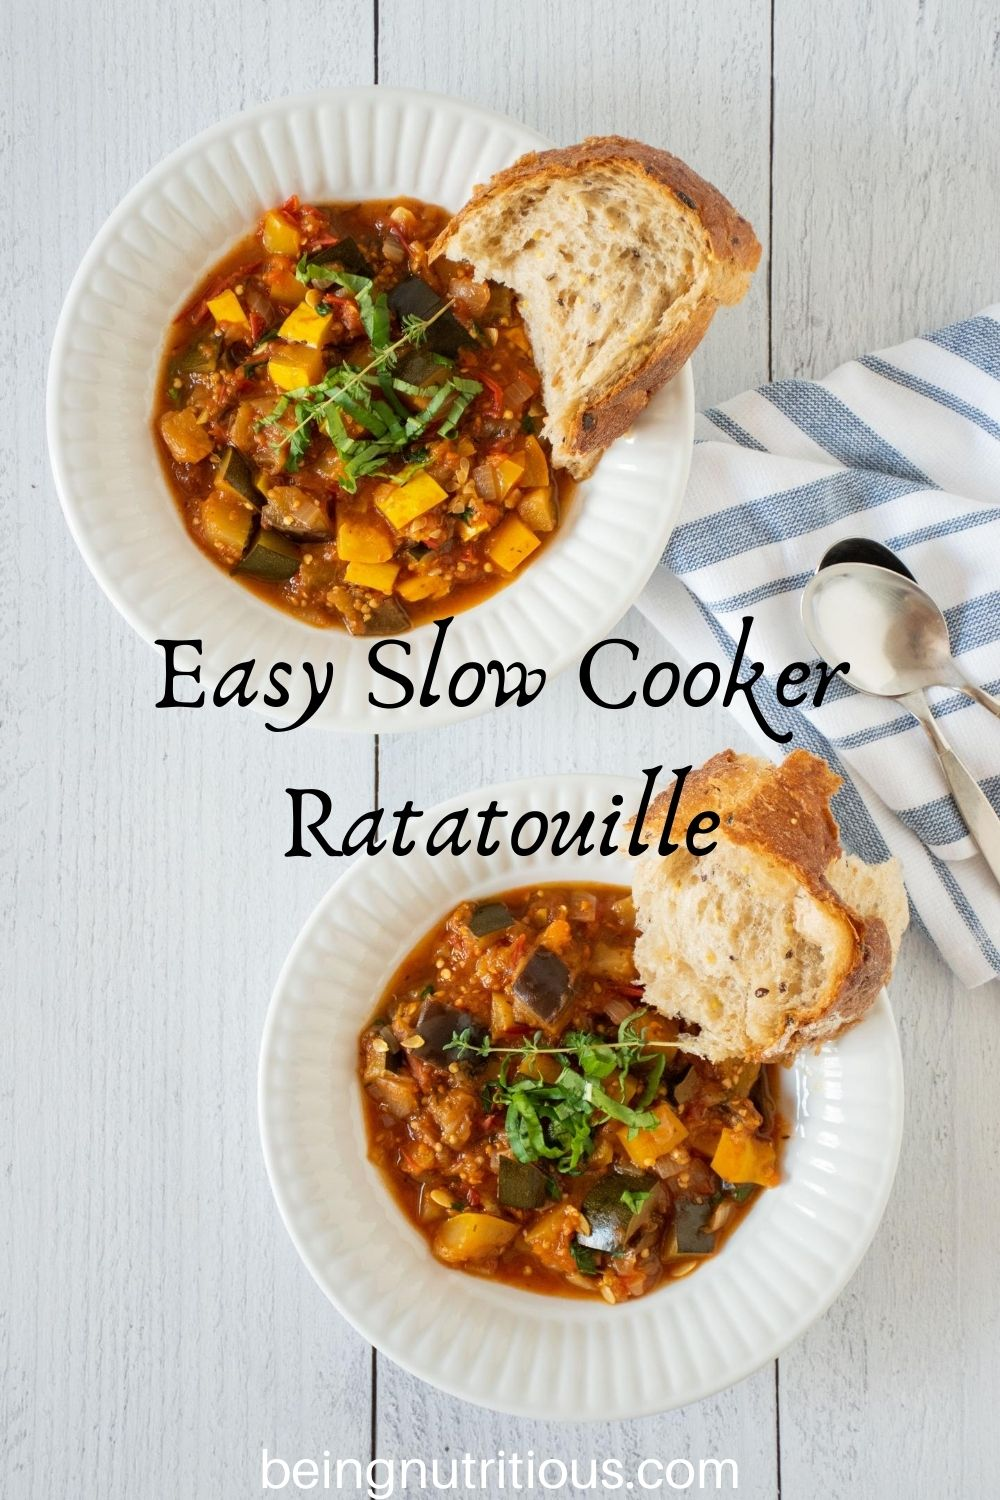 Overhead shot of 2 bowls of ratatouille with rustic bread. Text overlay: Easy Slow Cooker Ratatouille.